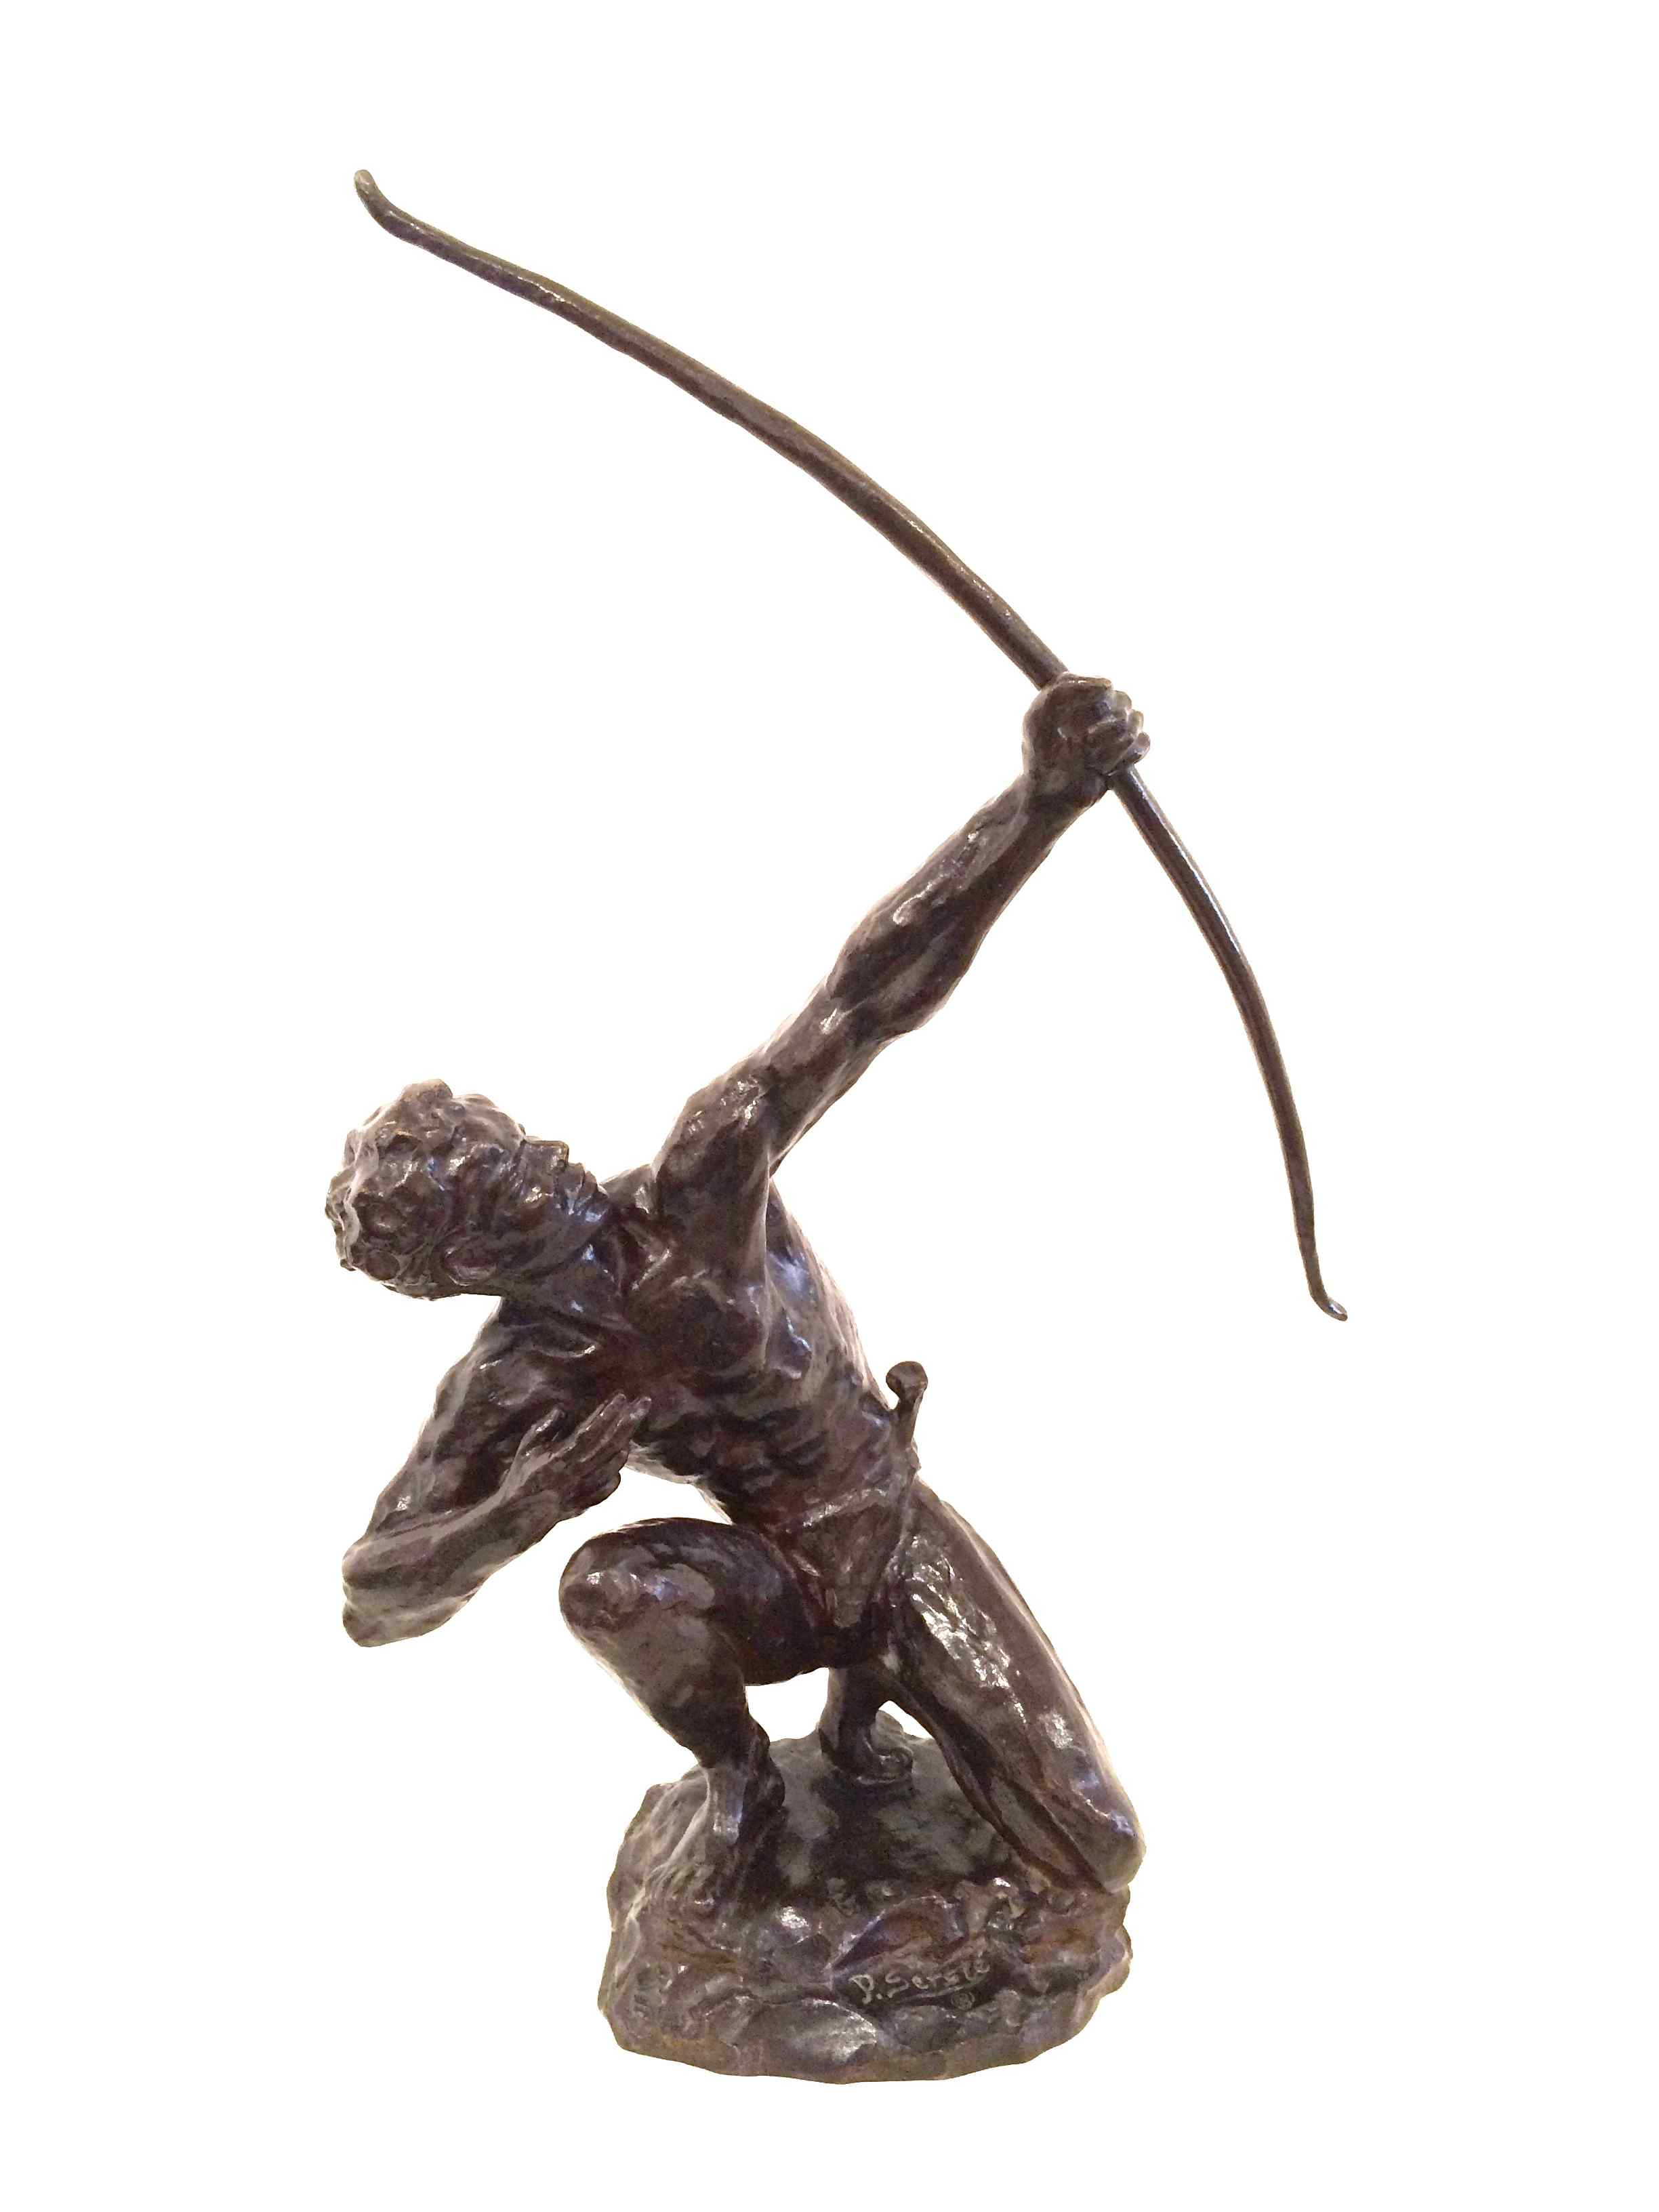 African archer by Paul Serste. born 1910